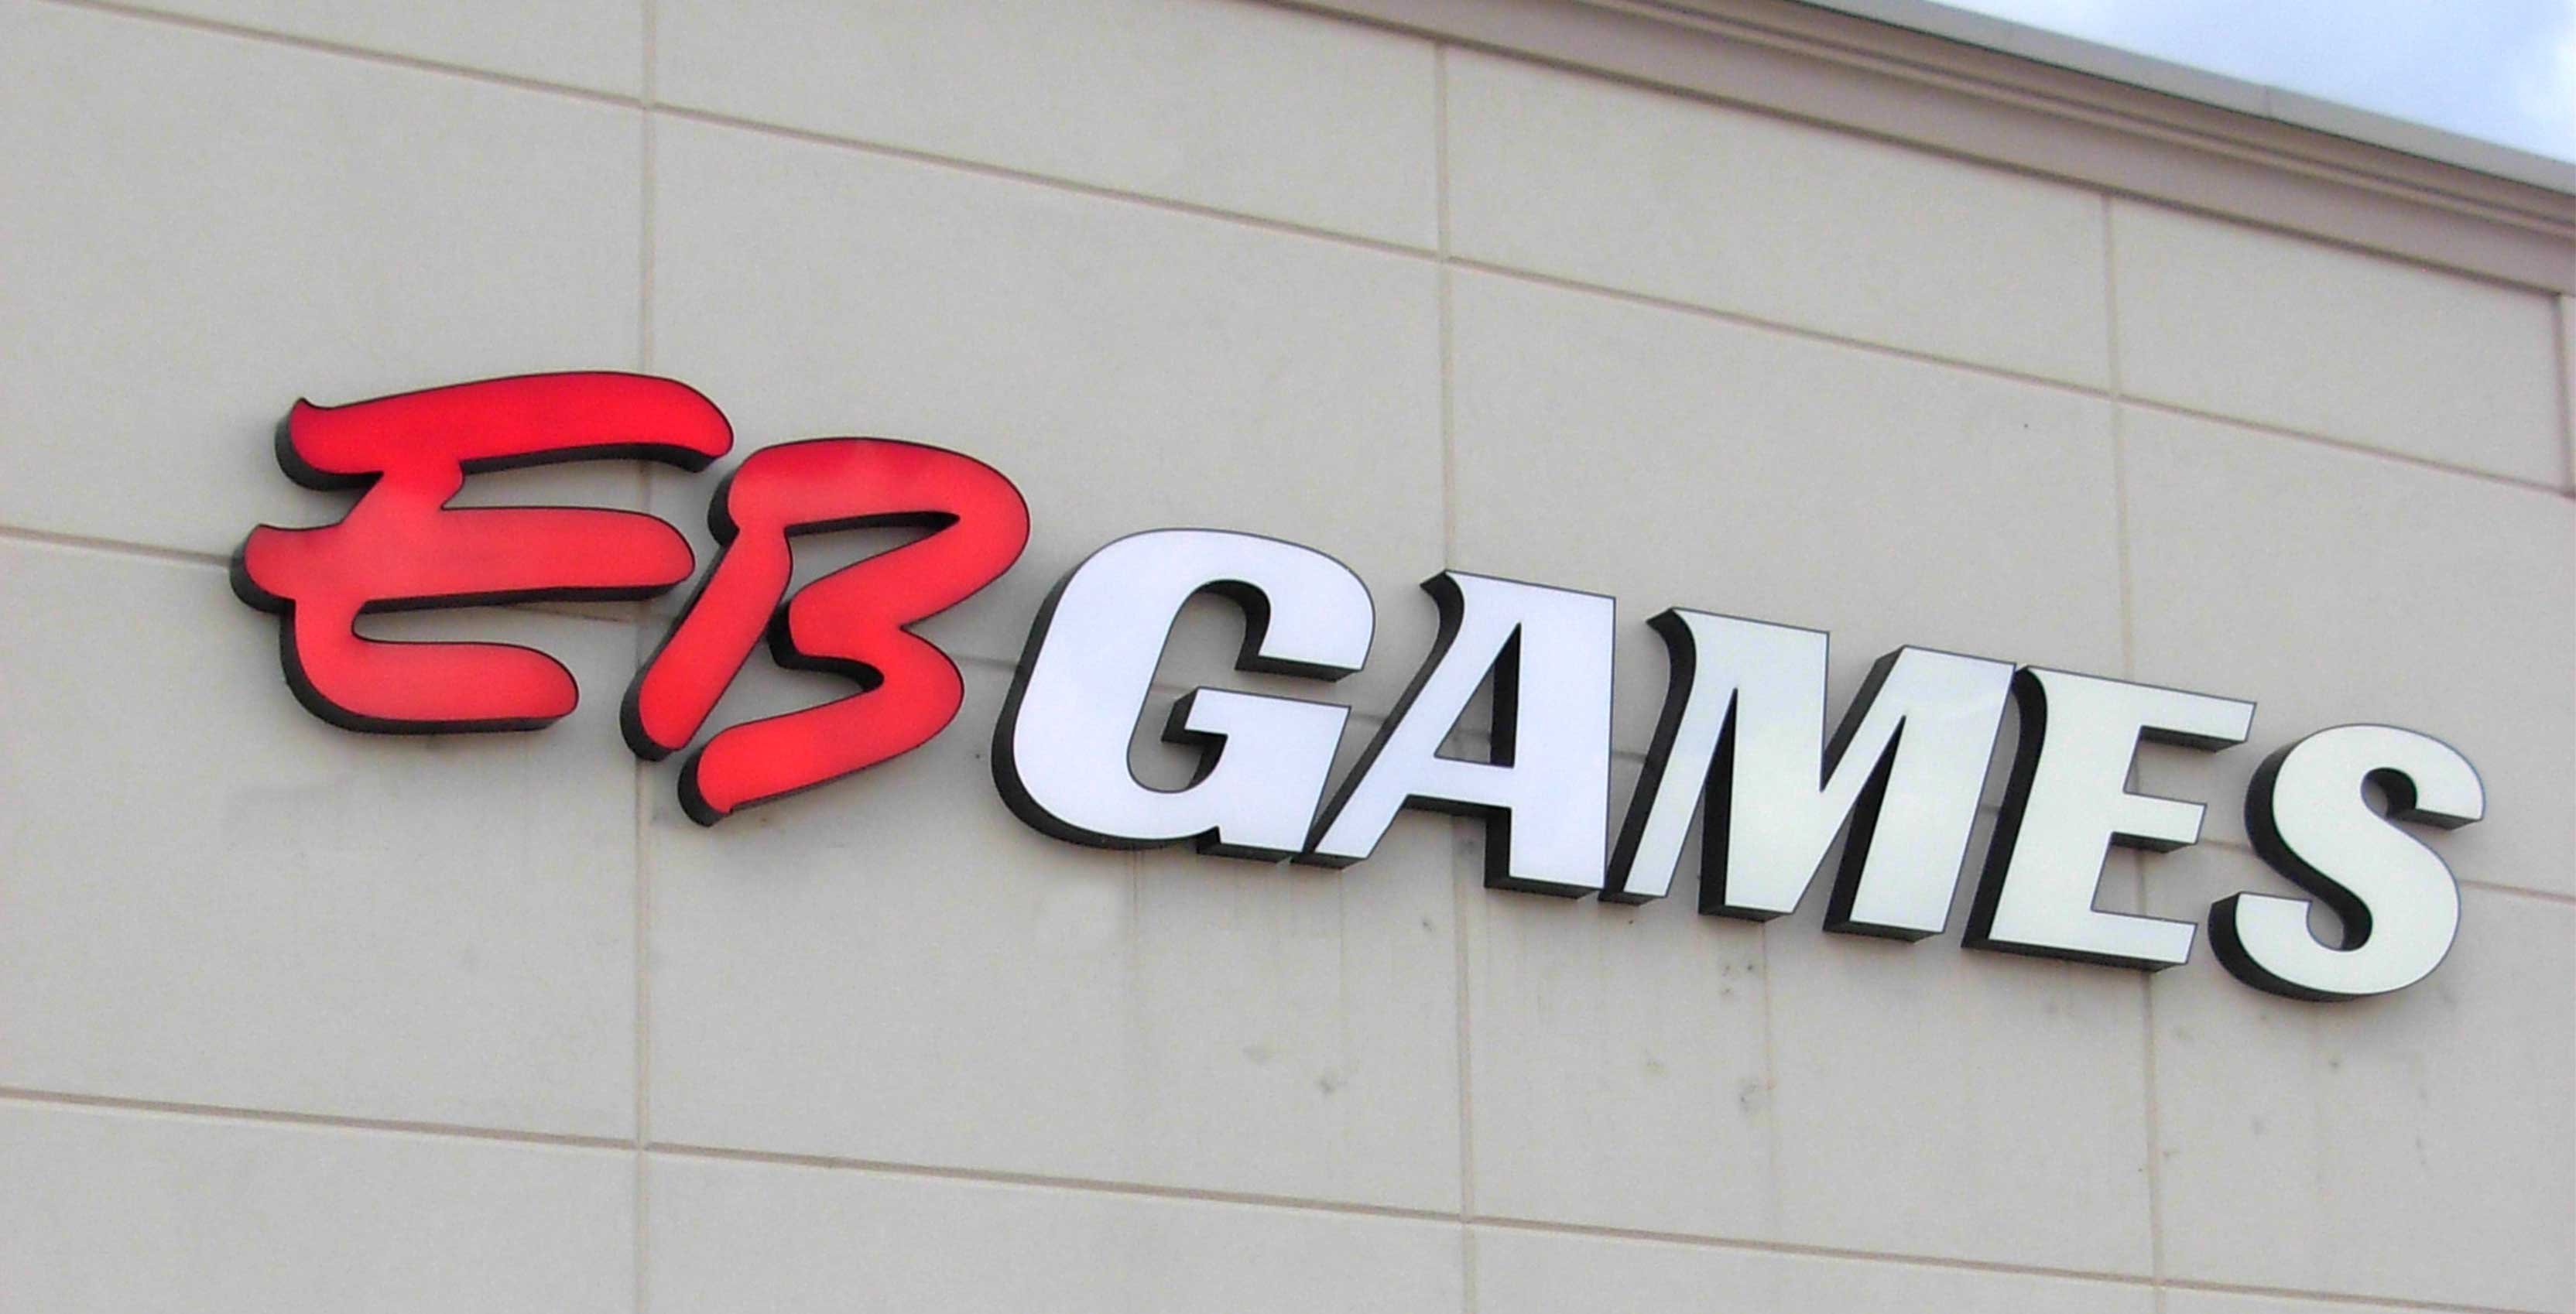 EB Games sign on building